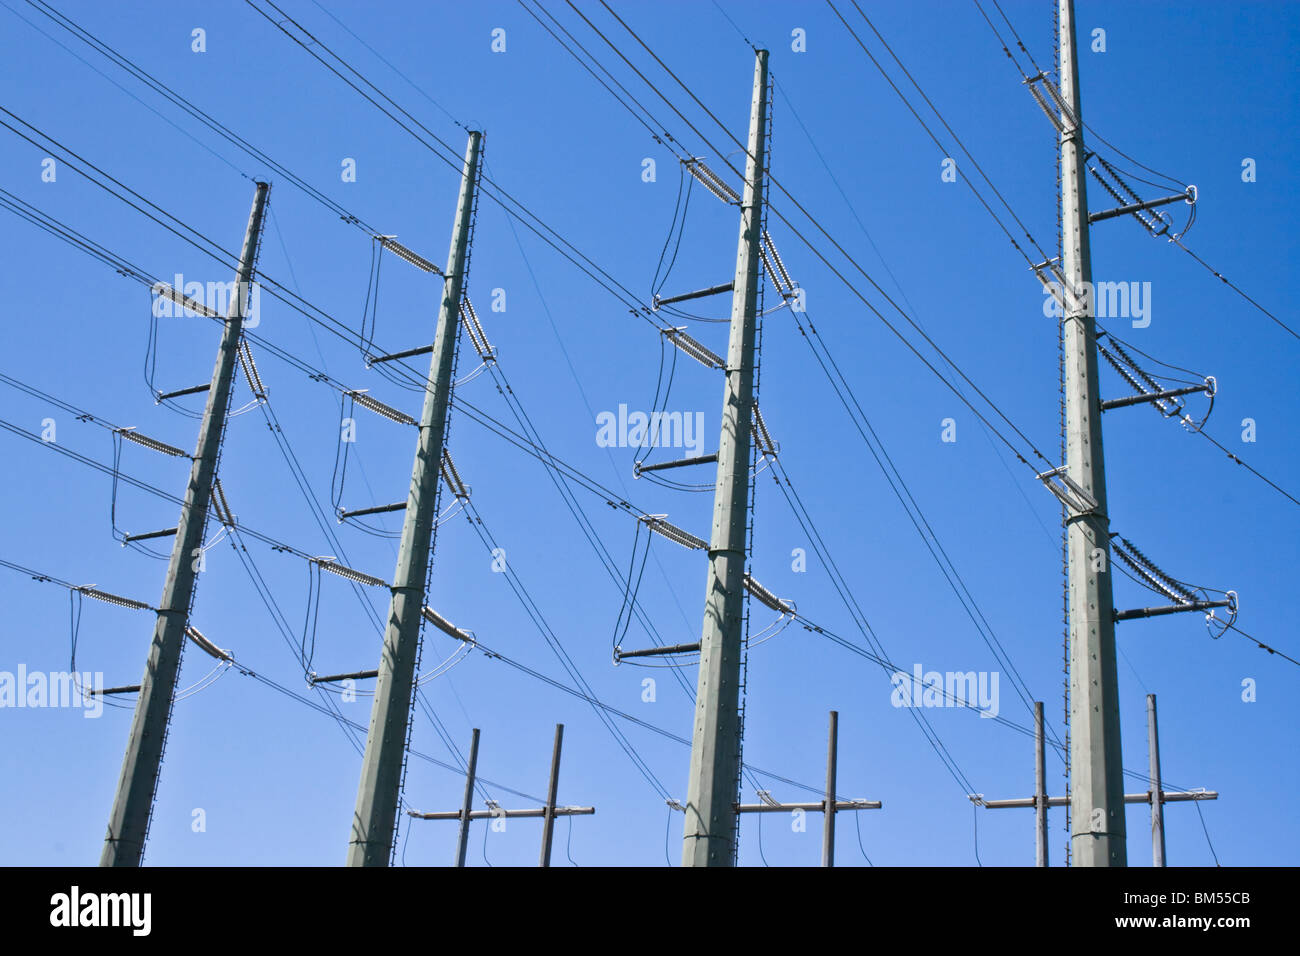 High Voltage Power lines - Stock Image